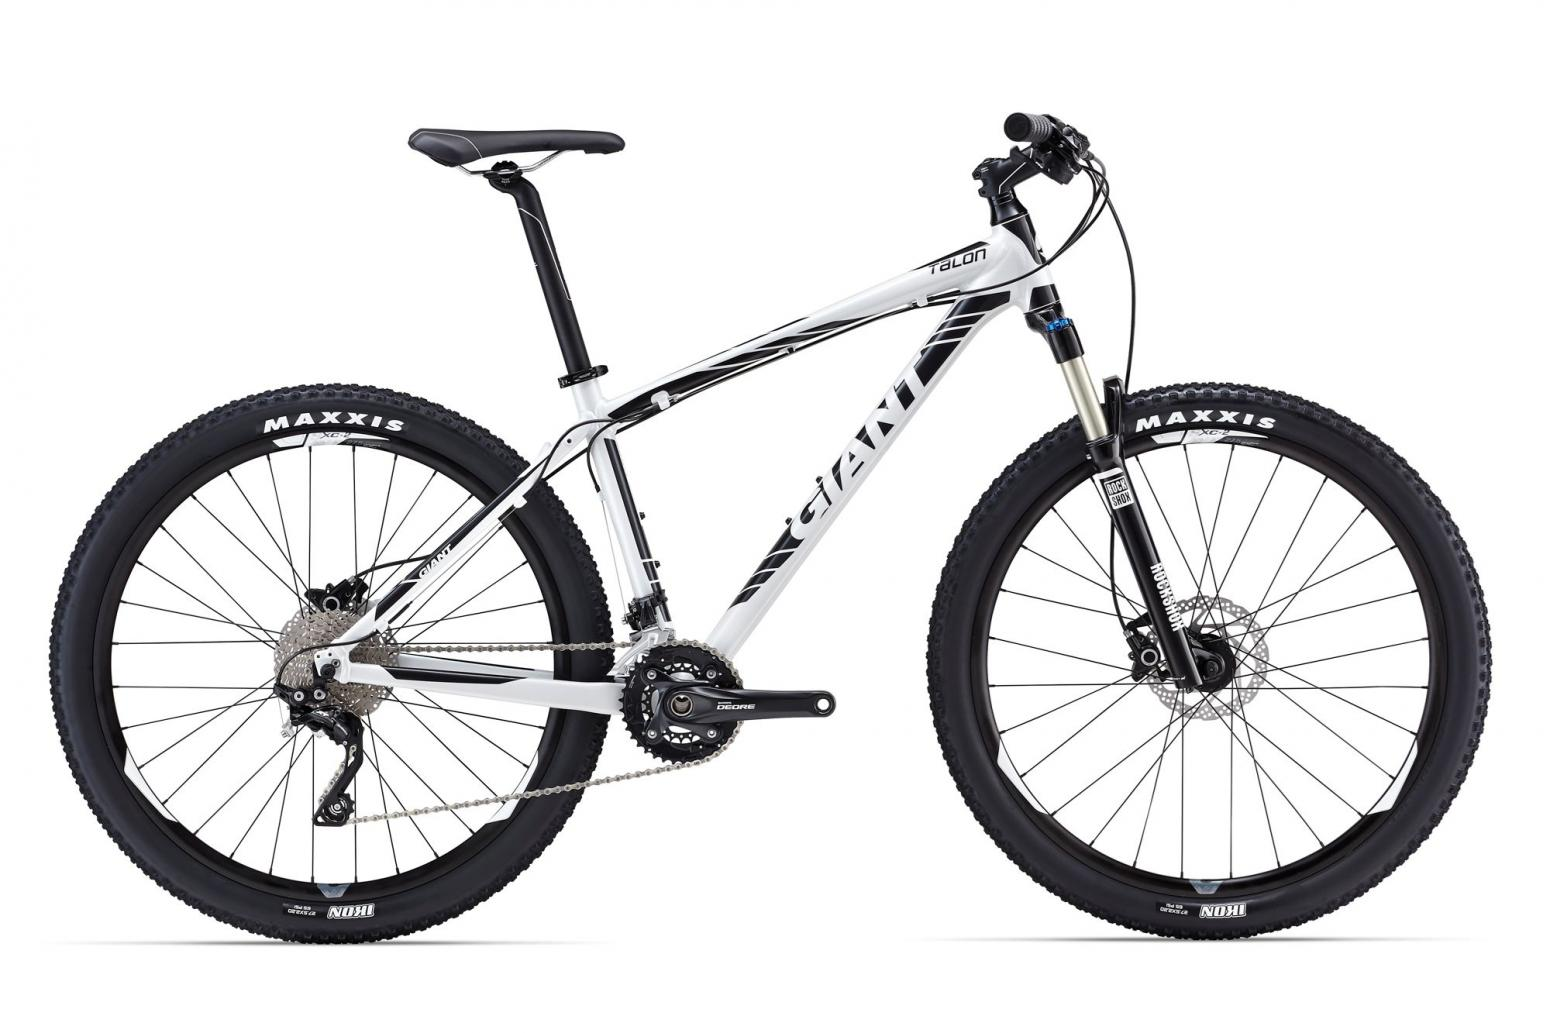 Giant MTB Trail/X-Country Talon 27.5 1 2016